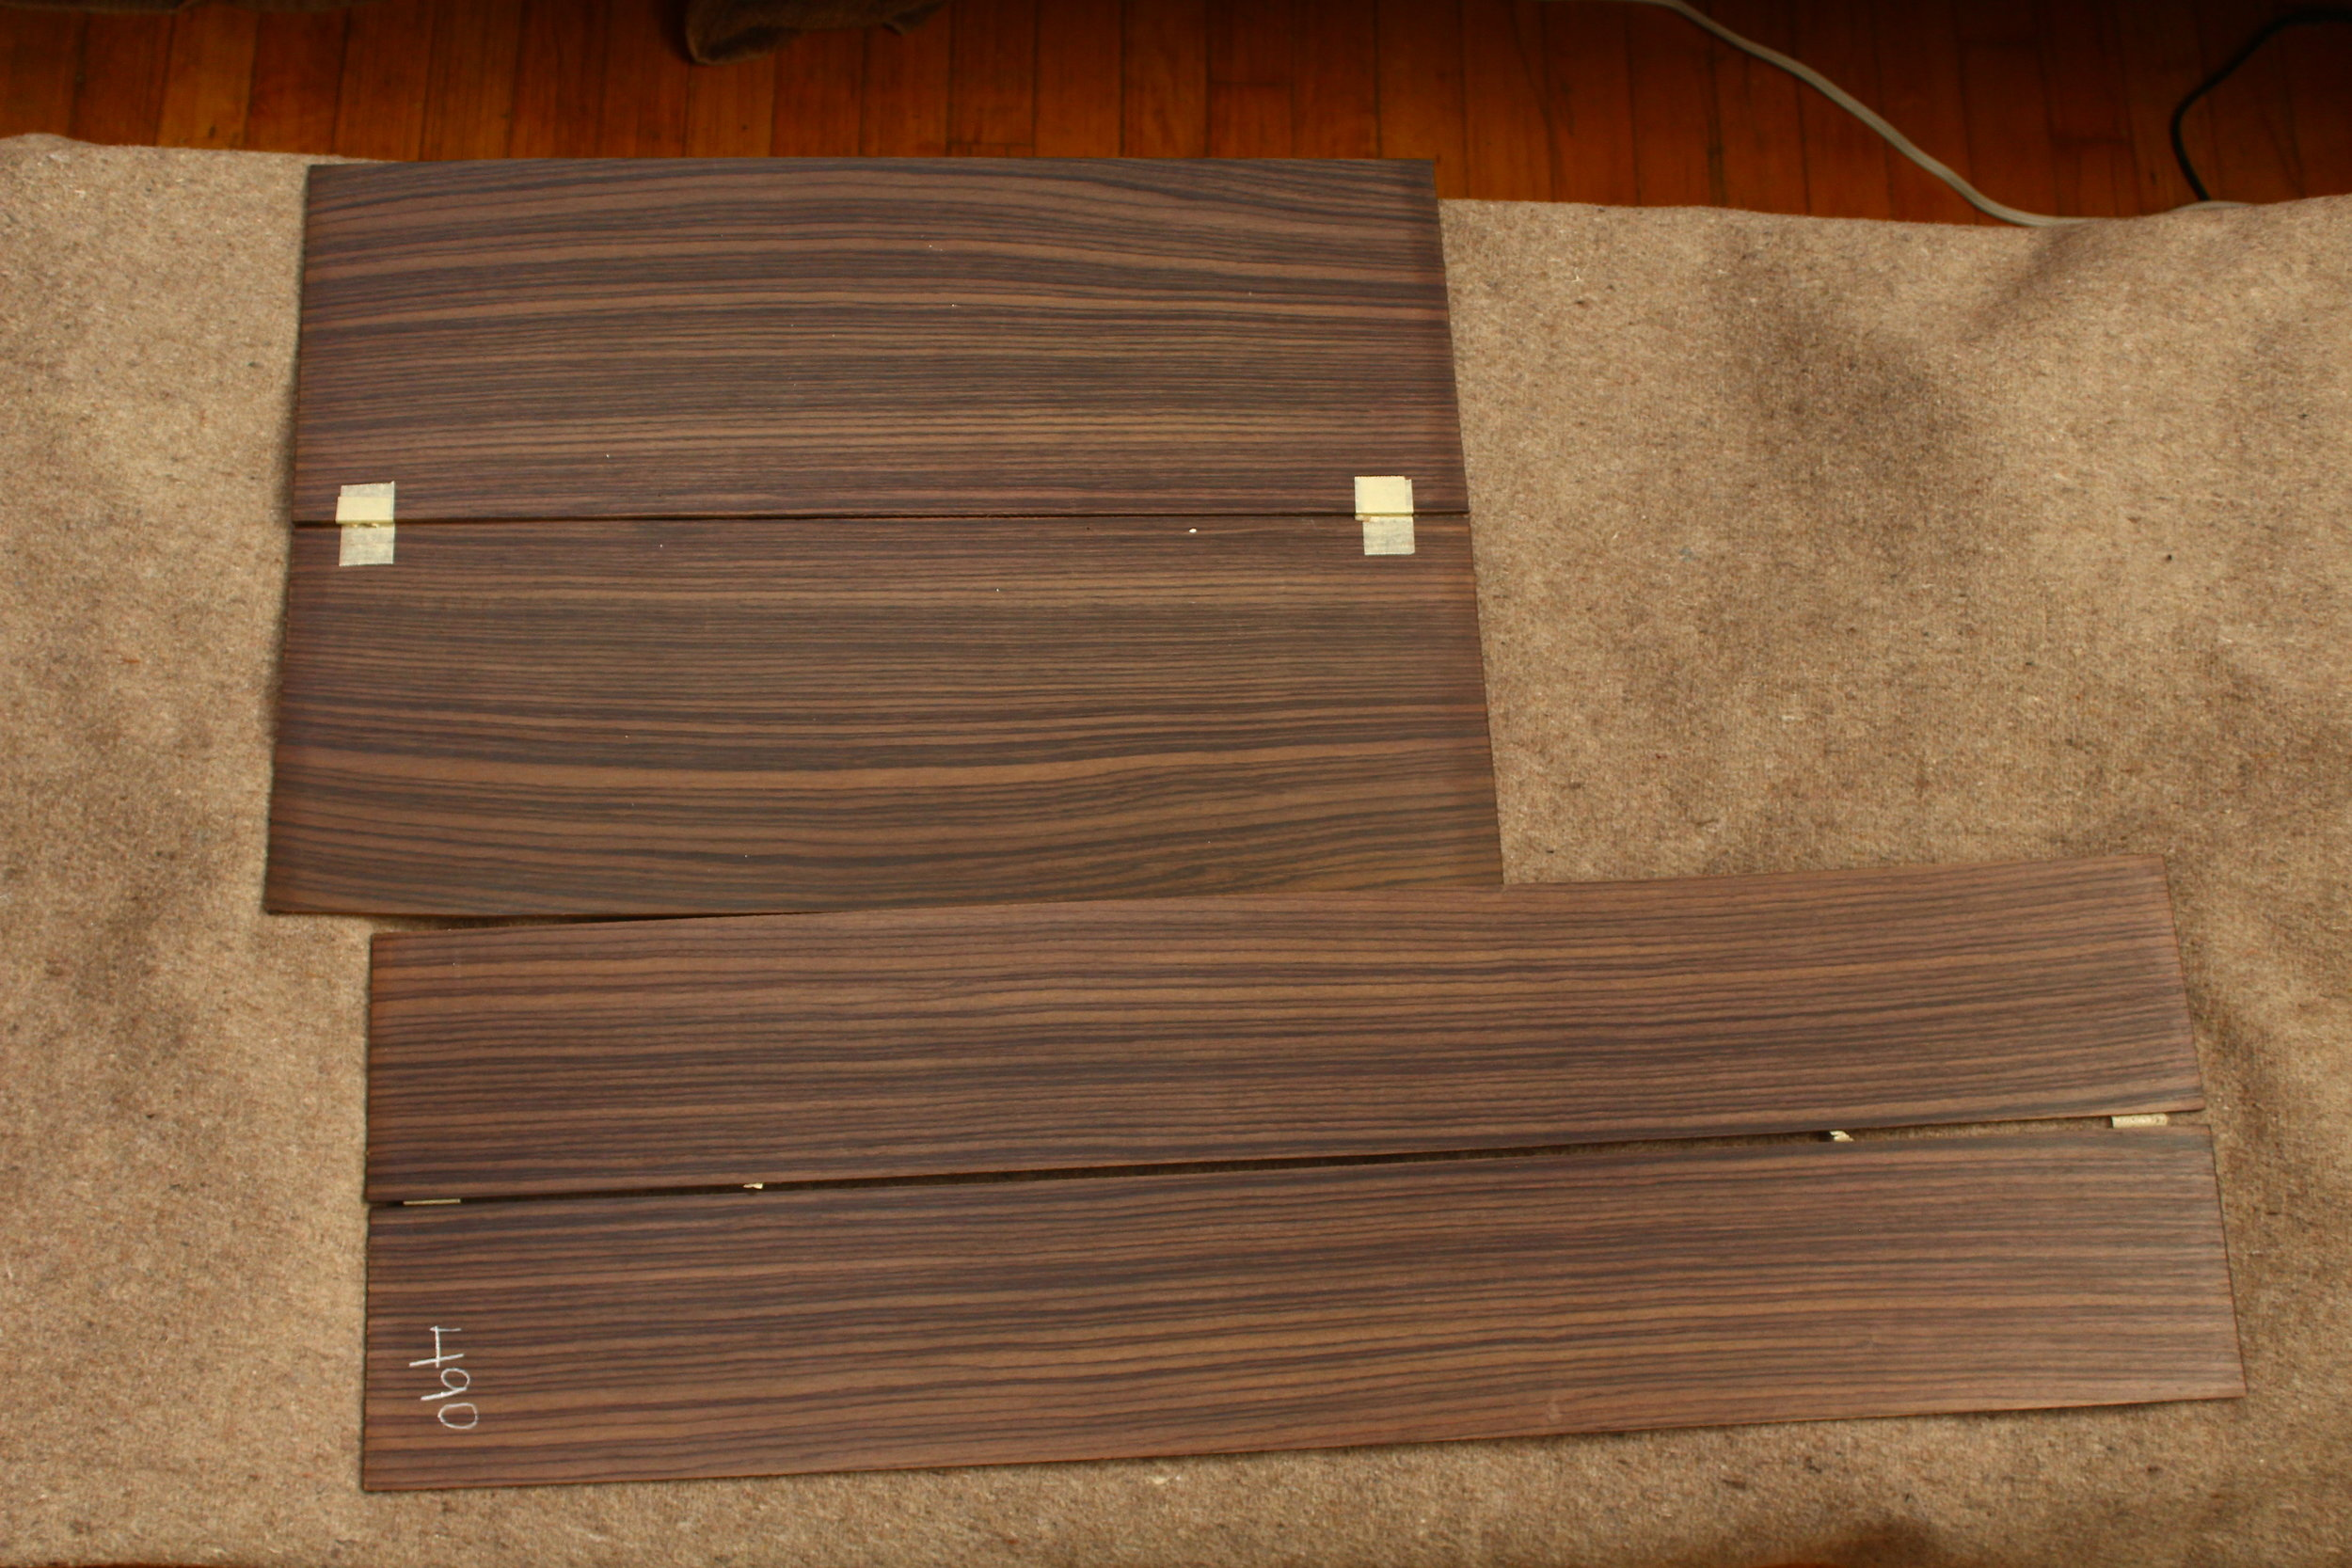 East Indian Rosewood -